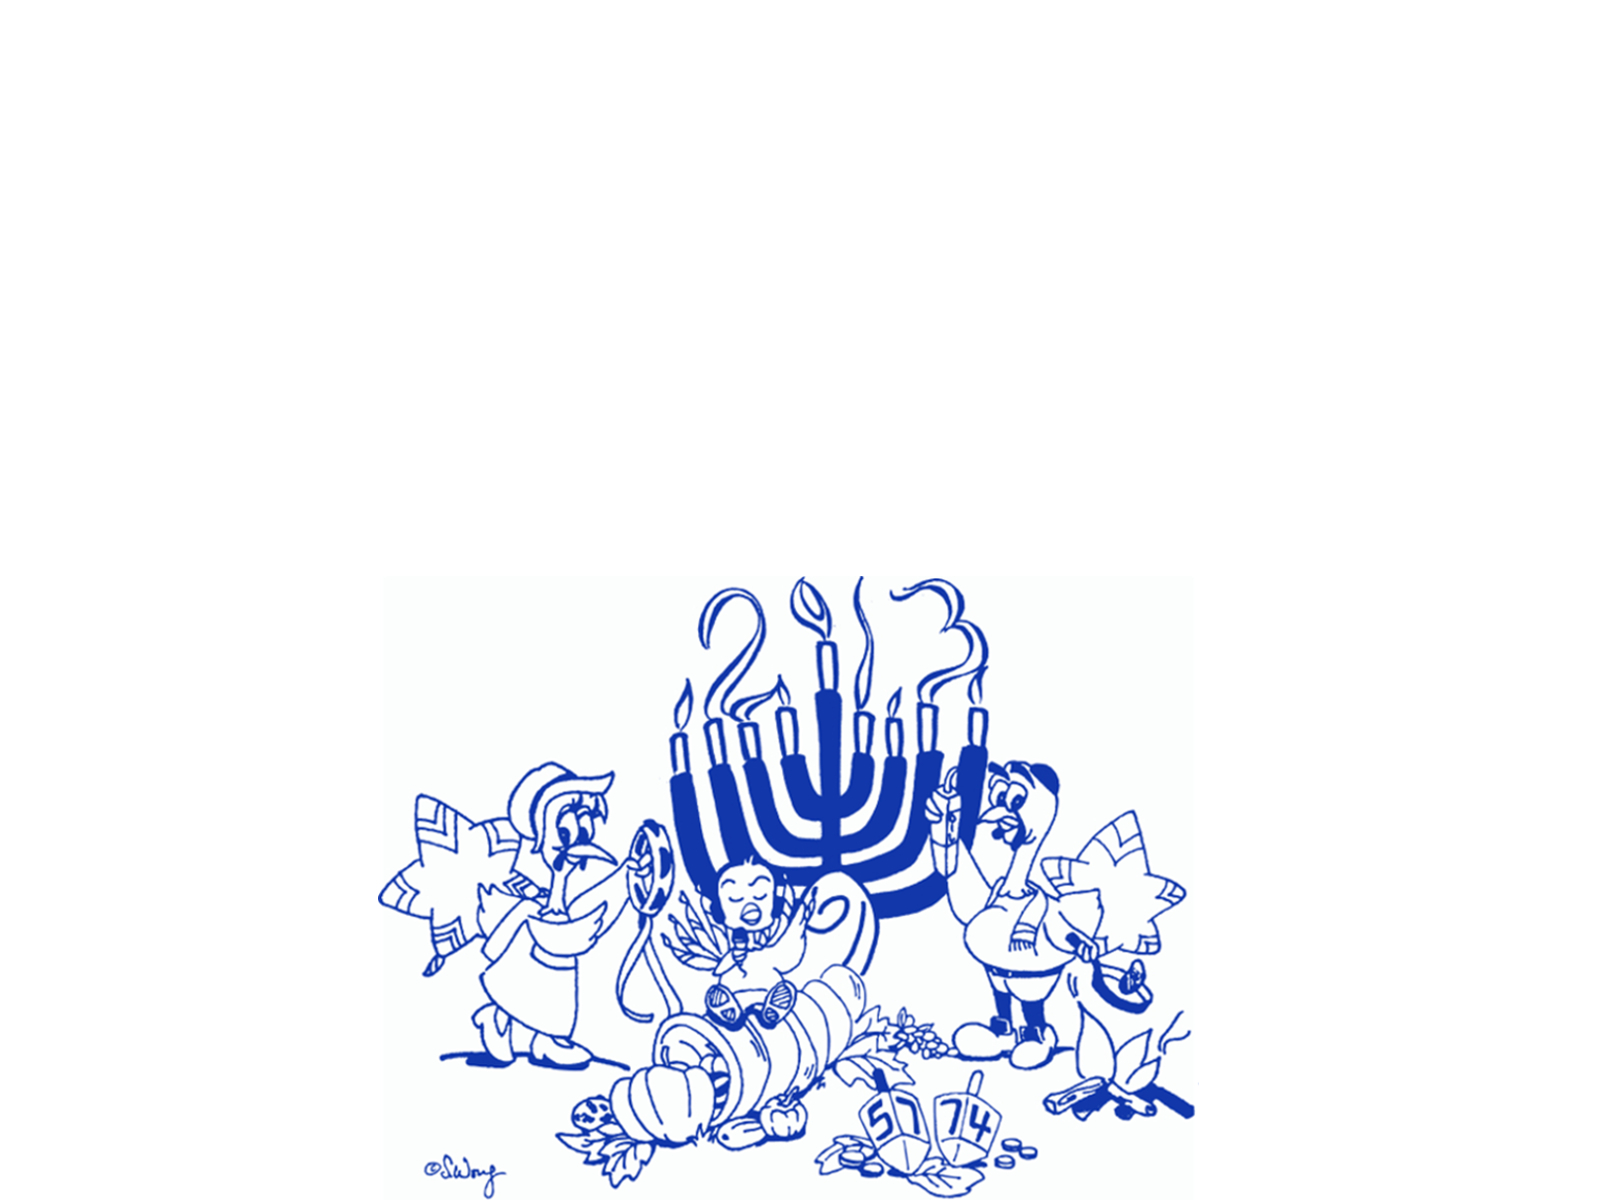 <h2><strong>Hanukkah Thanksgiving 2013 !</strong></h2>        	<p>Donate to the International Resc